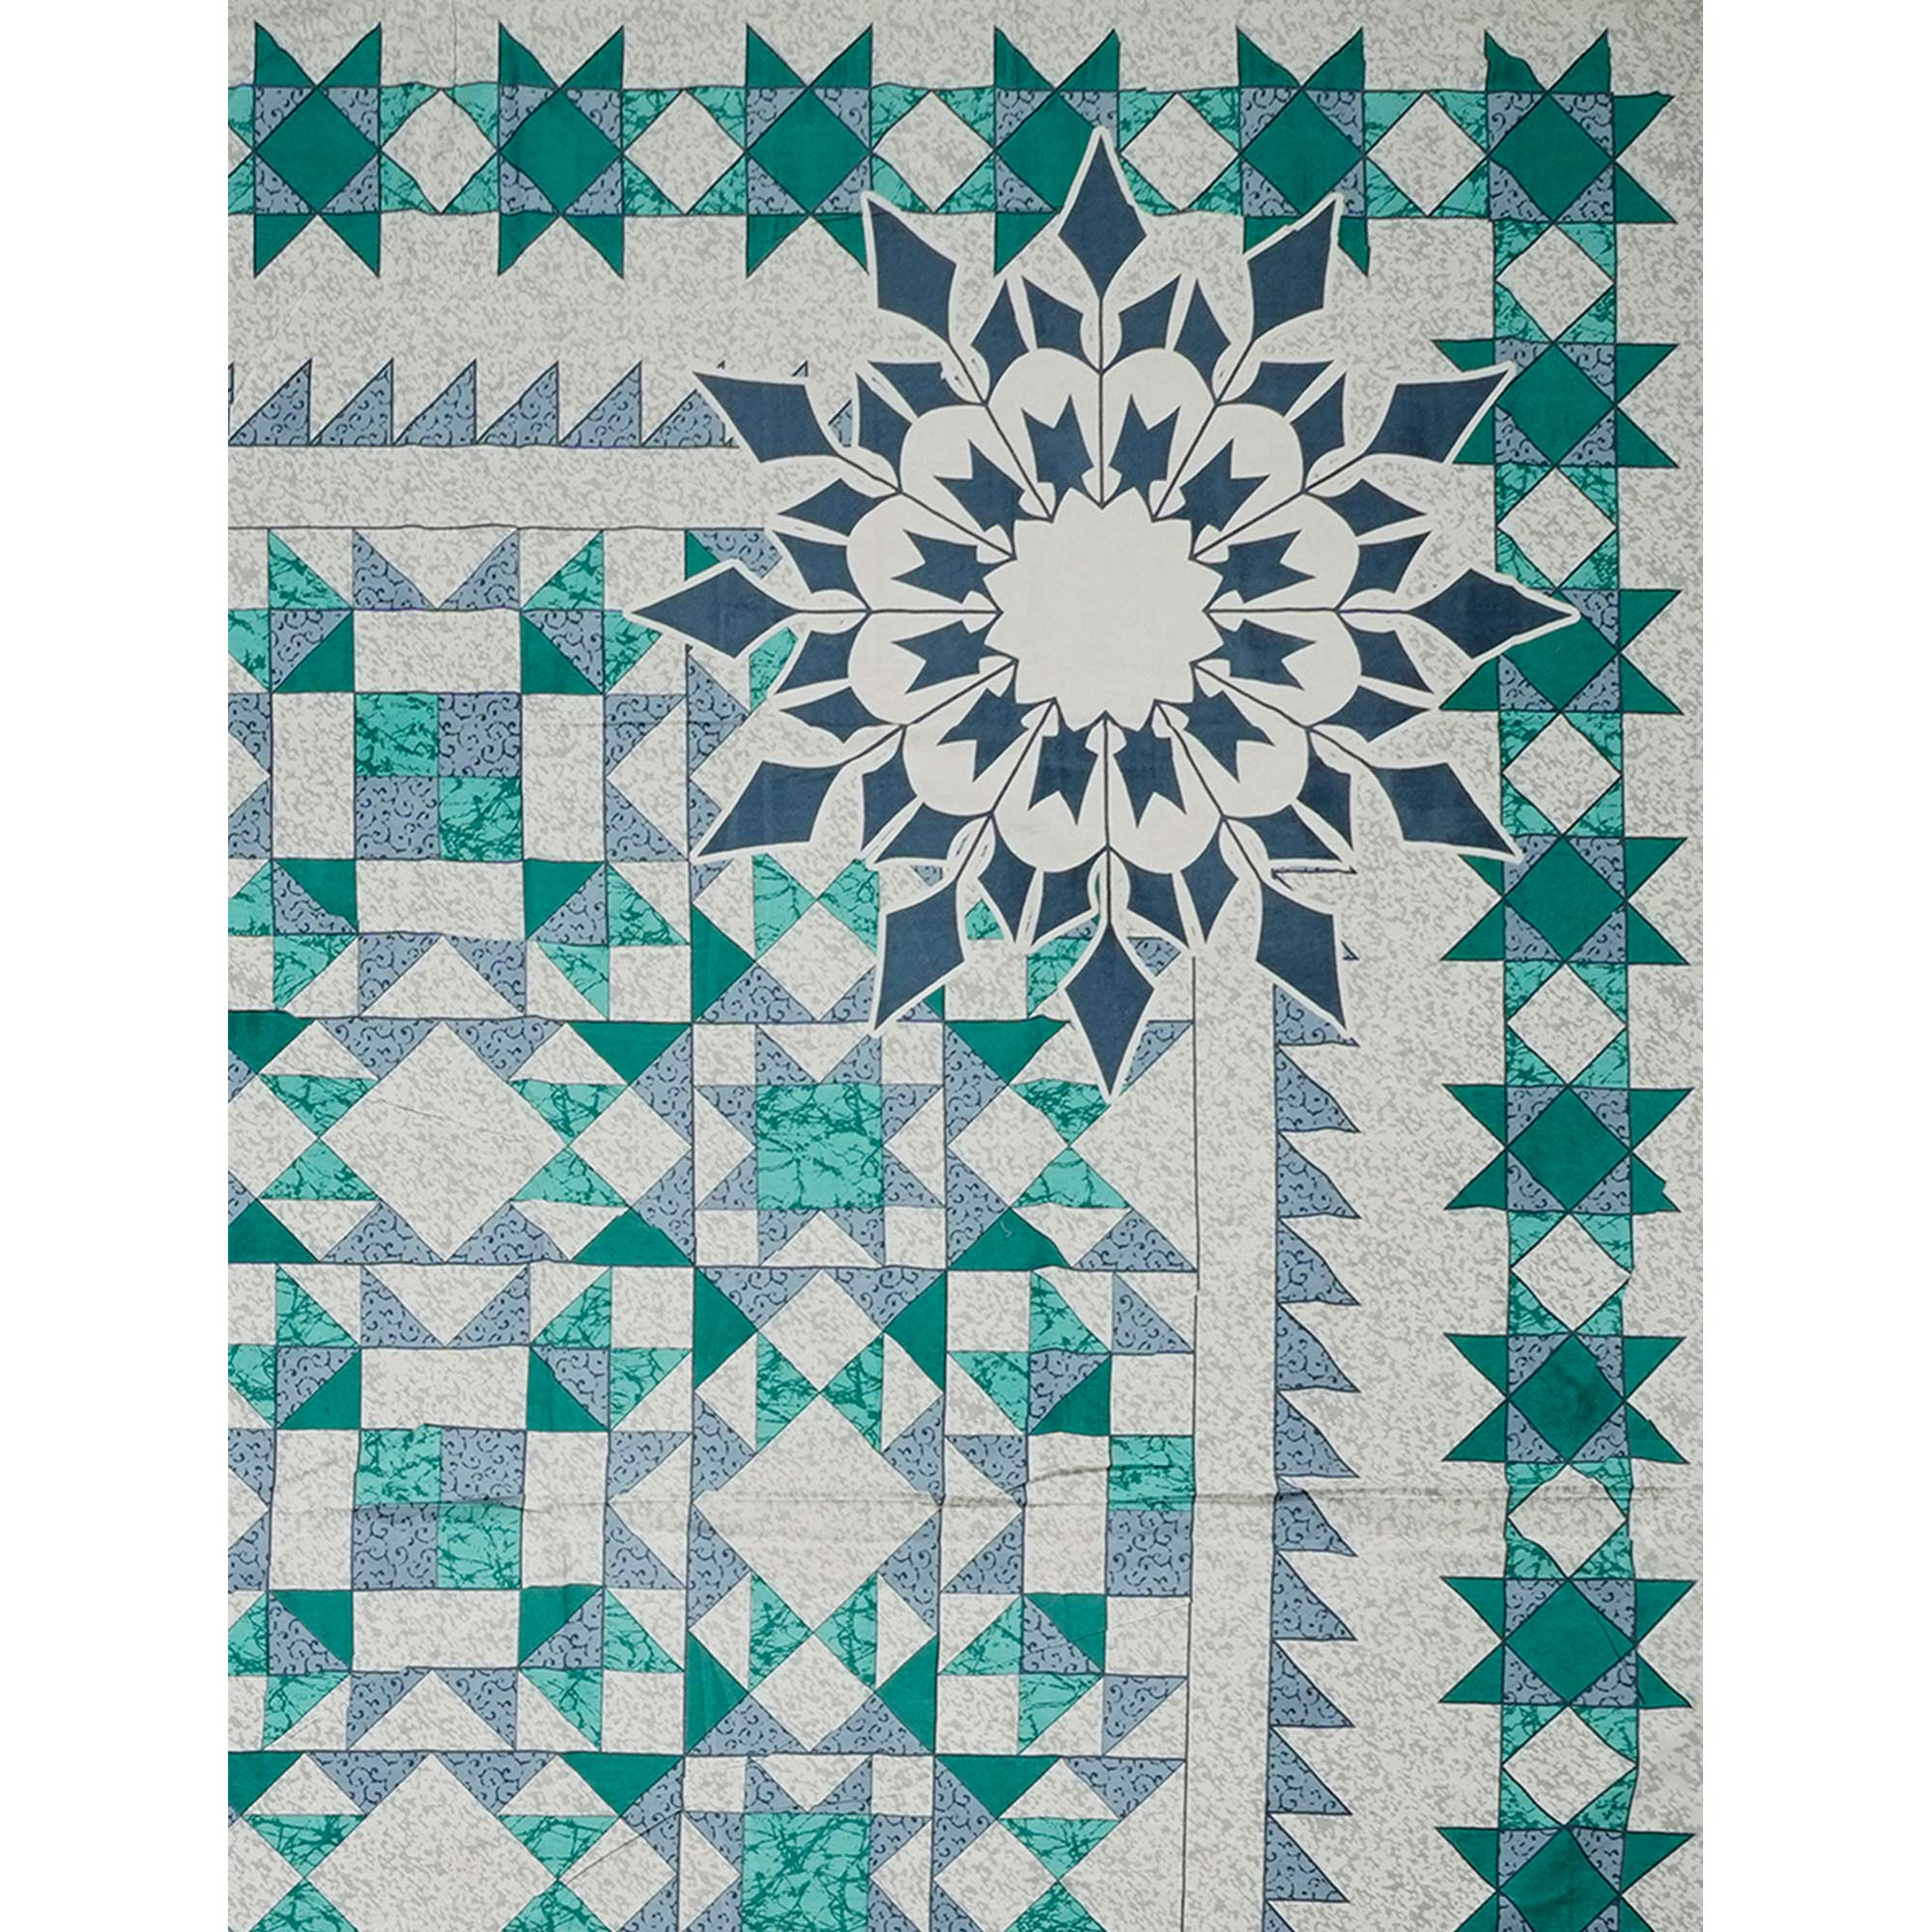 eCraftIndia - 180 TC Pure Cotton Premium Double Bed King Size Geometric Design Bedsheet (100 In x 108 In) with 2 pillow cover - Blue